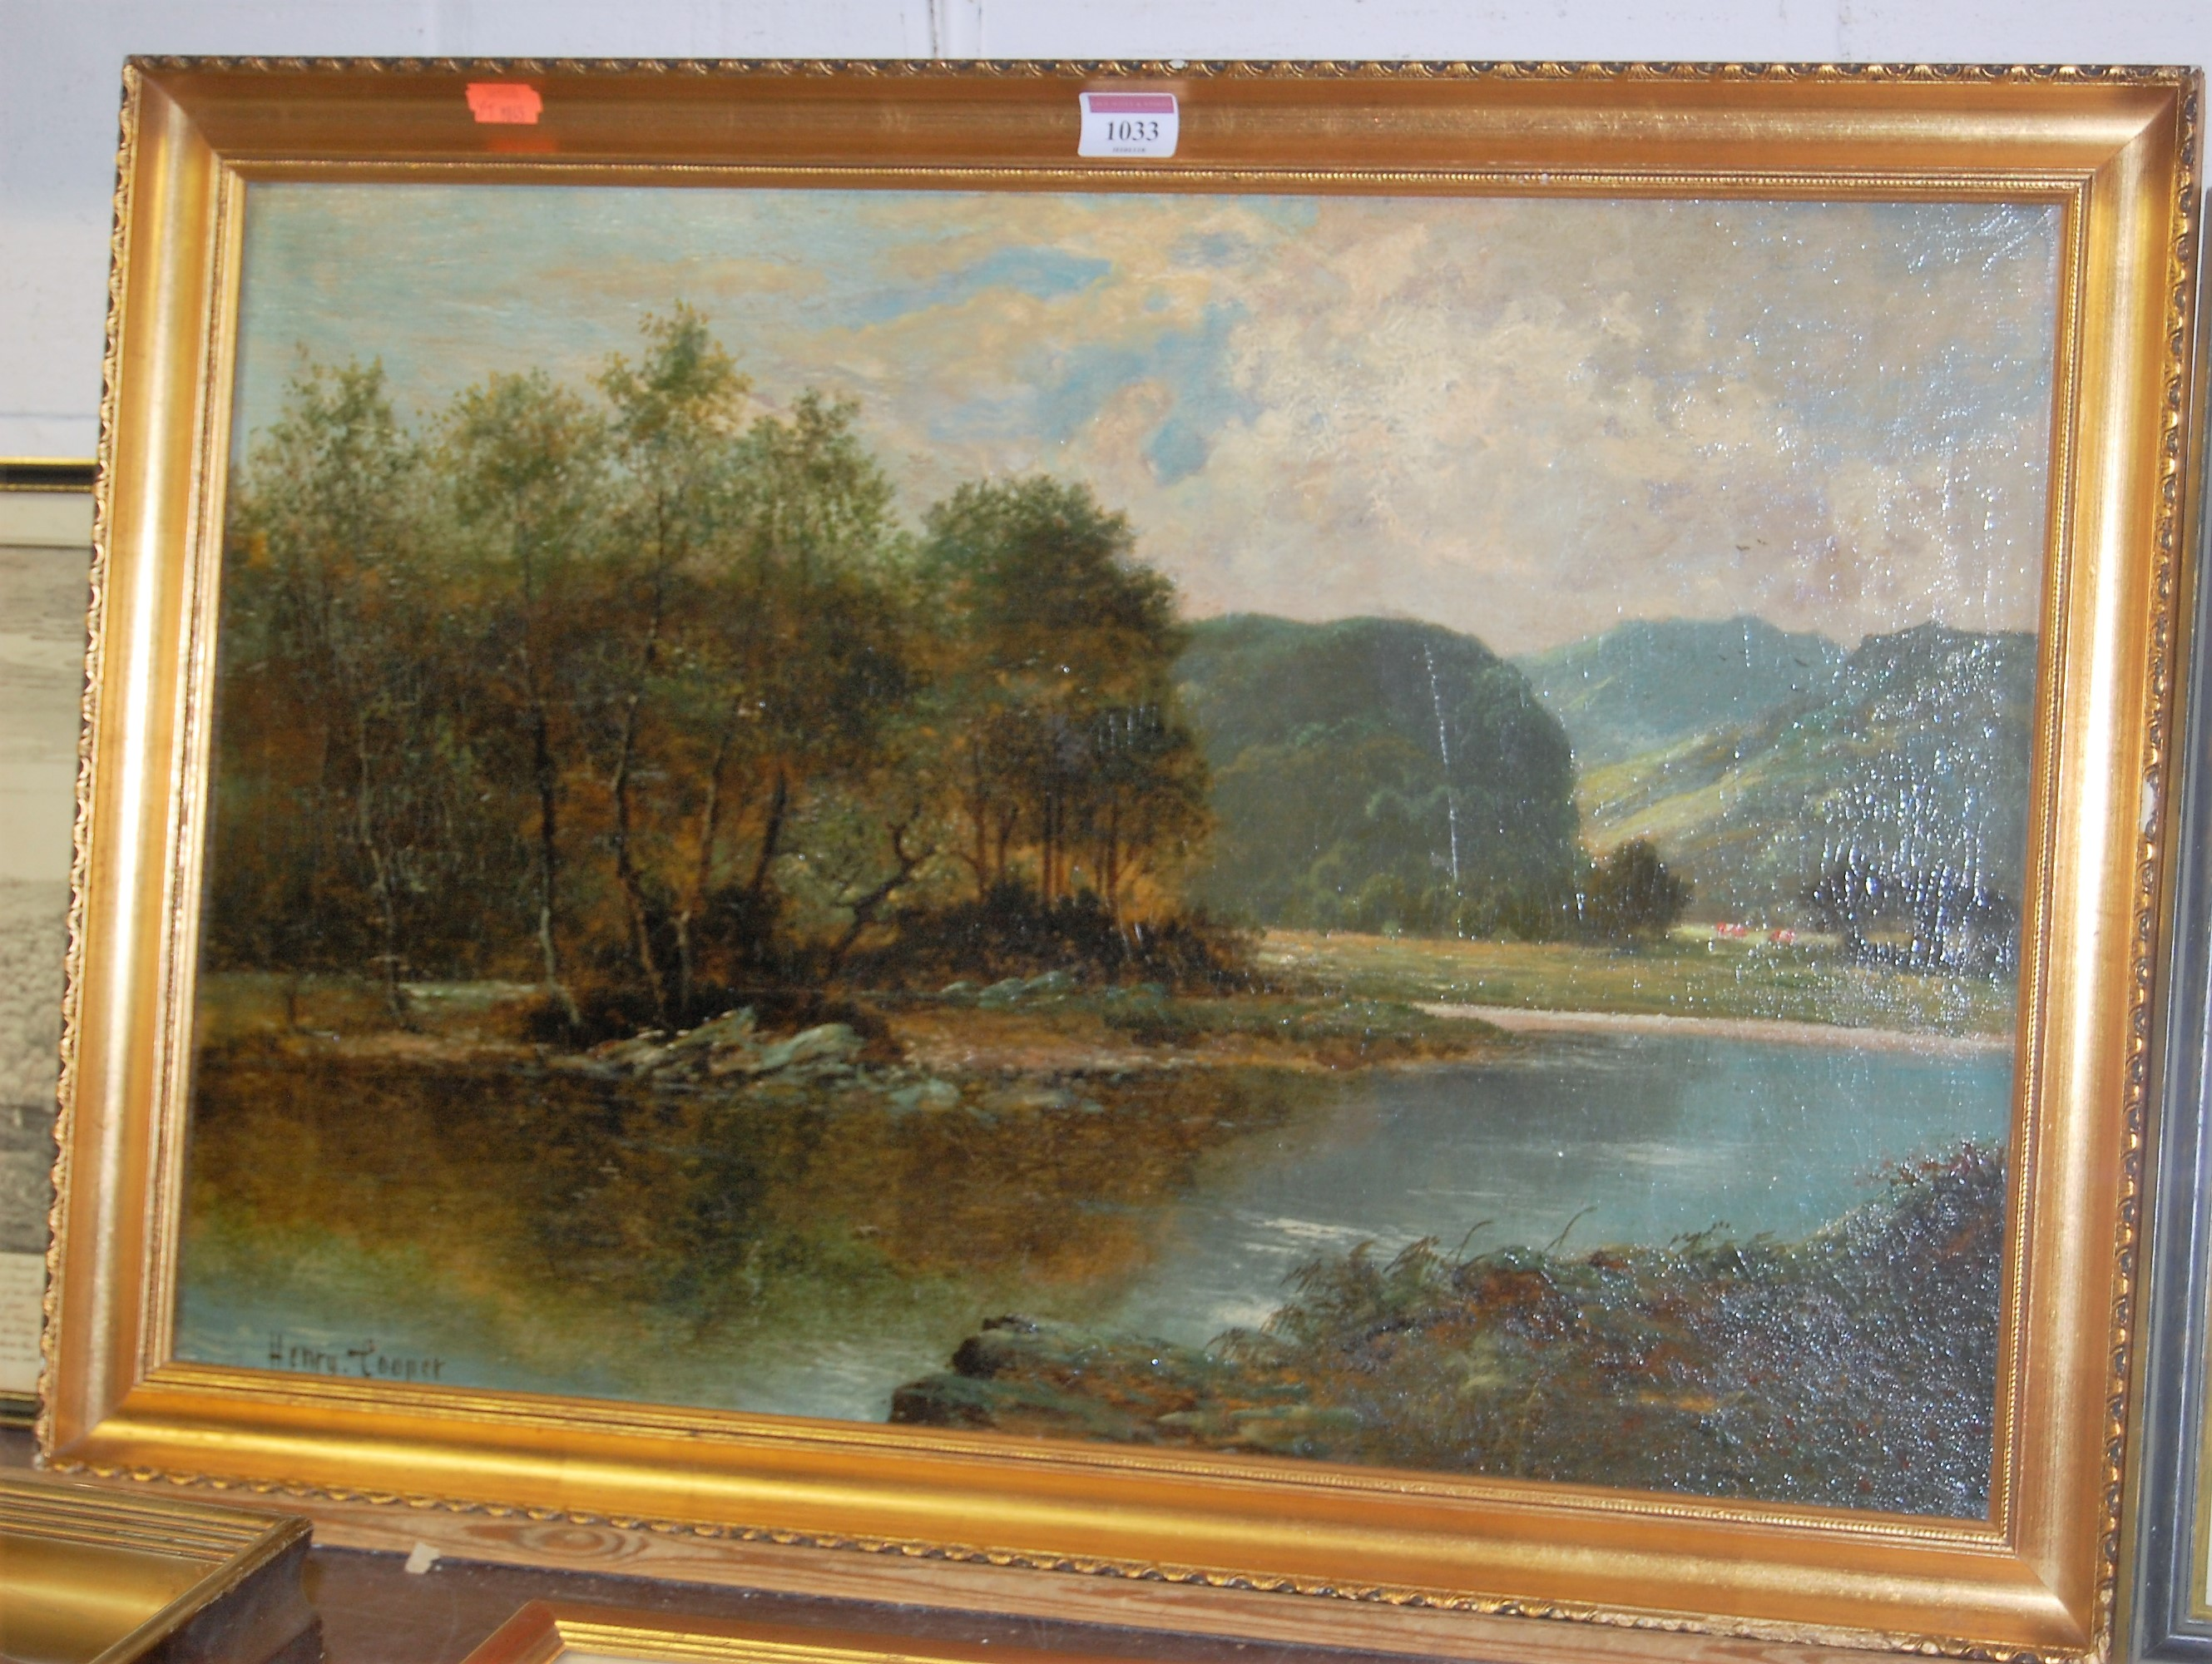 Lot 1033 - Henry Cooper - Cattle grazing in a North Wales valley, oil on card, signed lower left, 39 x 59cm